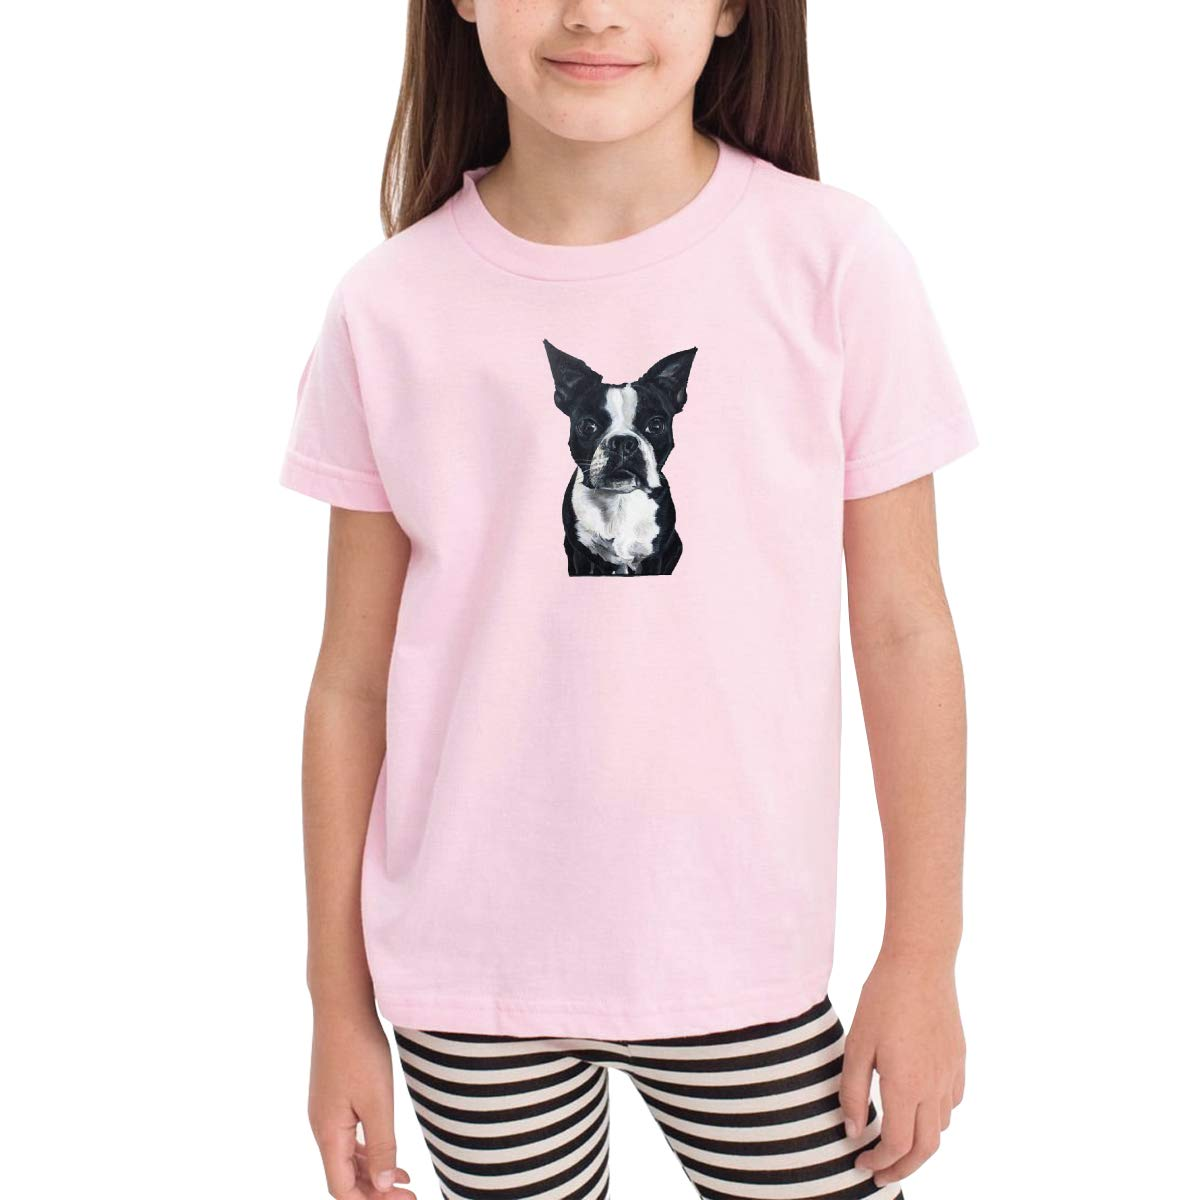 Onlybabycare Boston Terrier Dog Toddler Boys Girls Short Sleeve T Shirt Kids Summer Top Tee 100/% Cotton Clothes 2-6 T